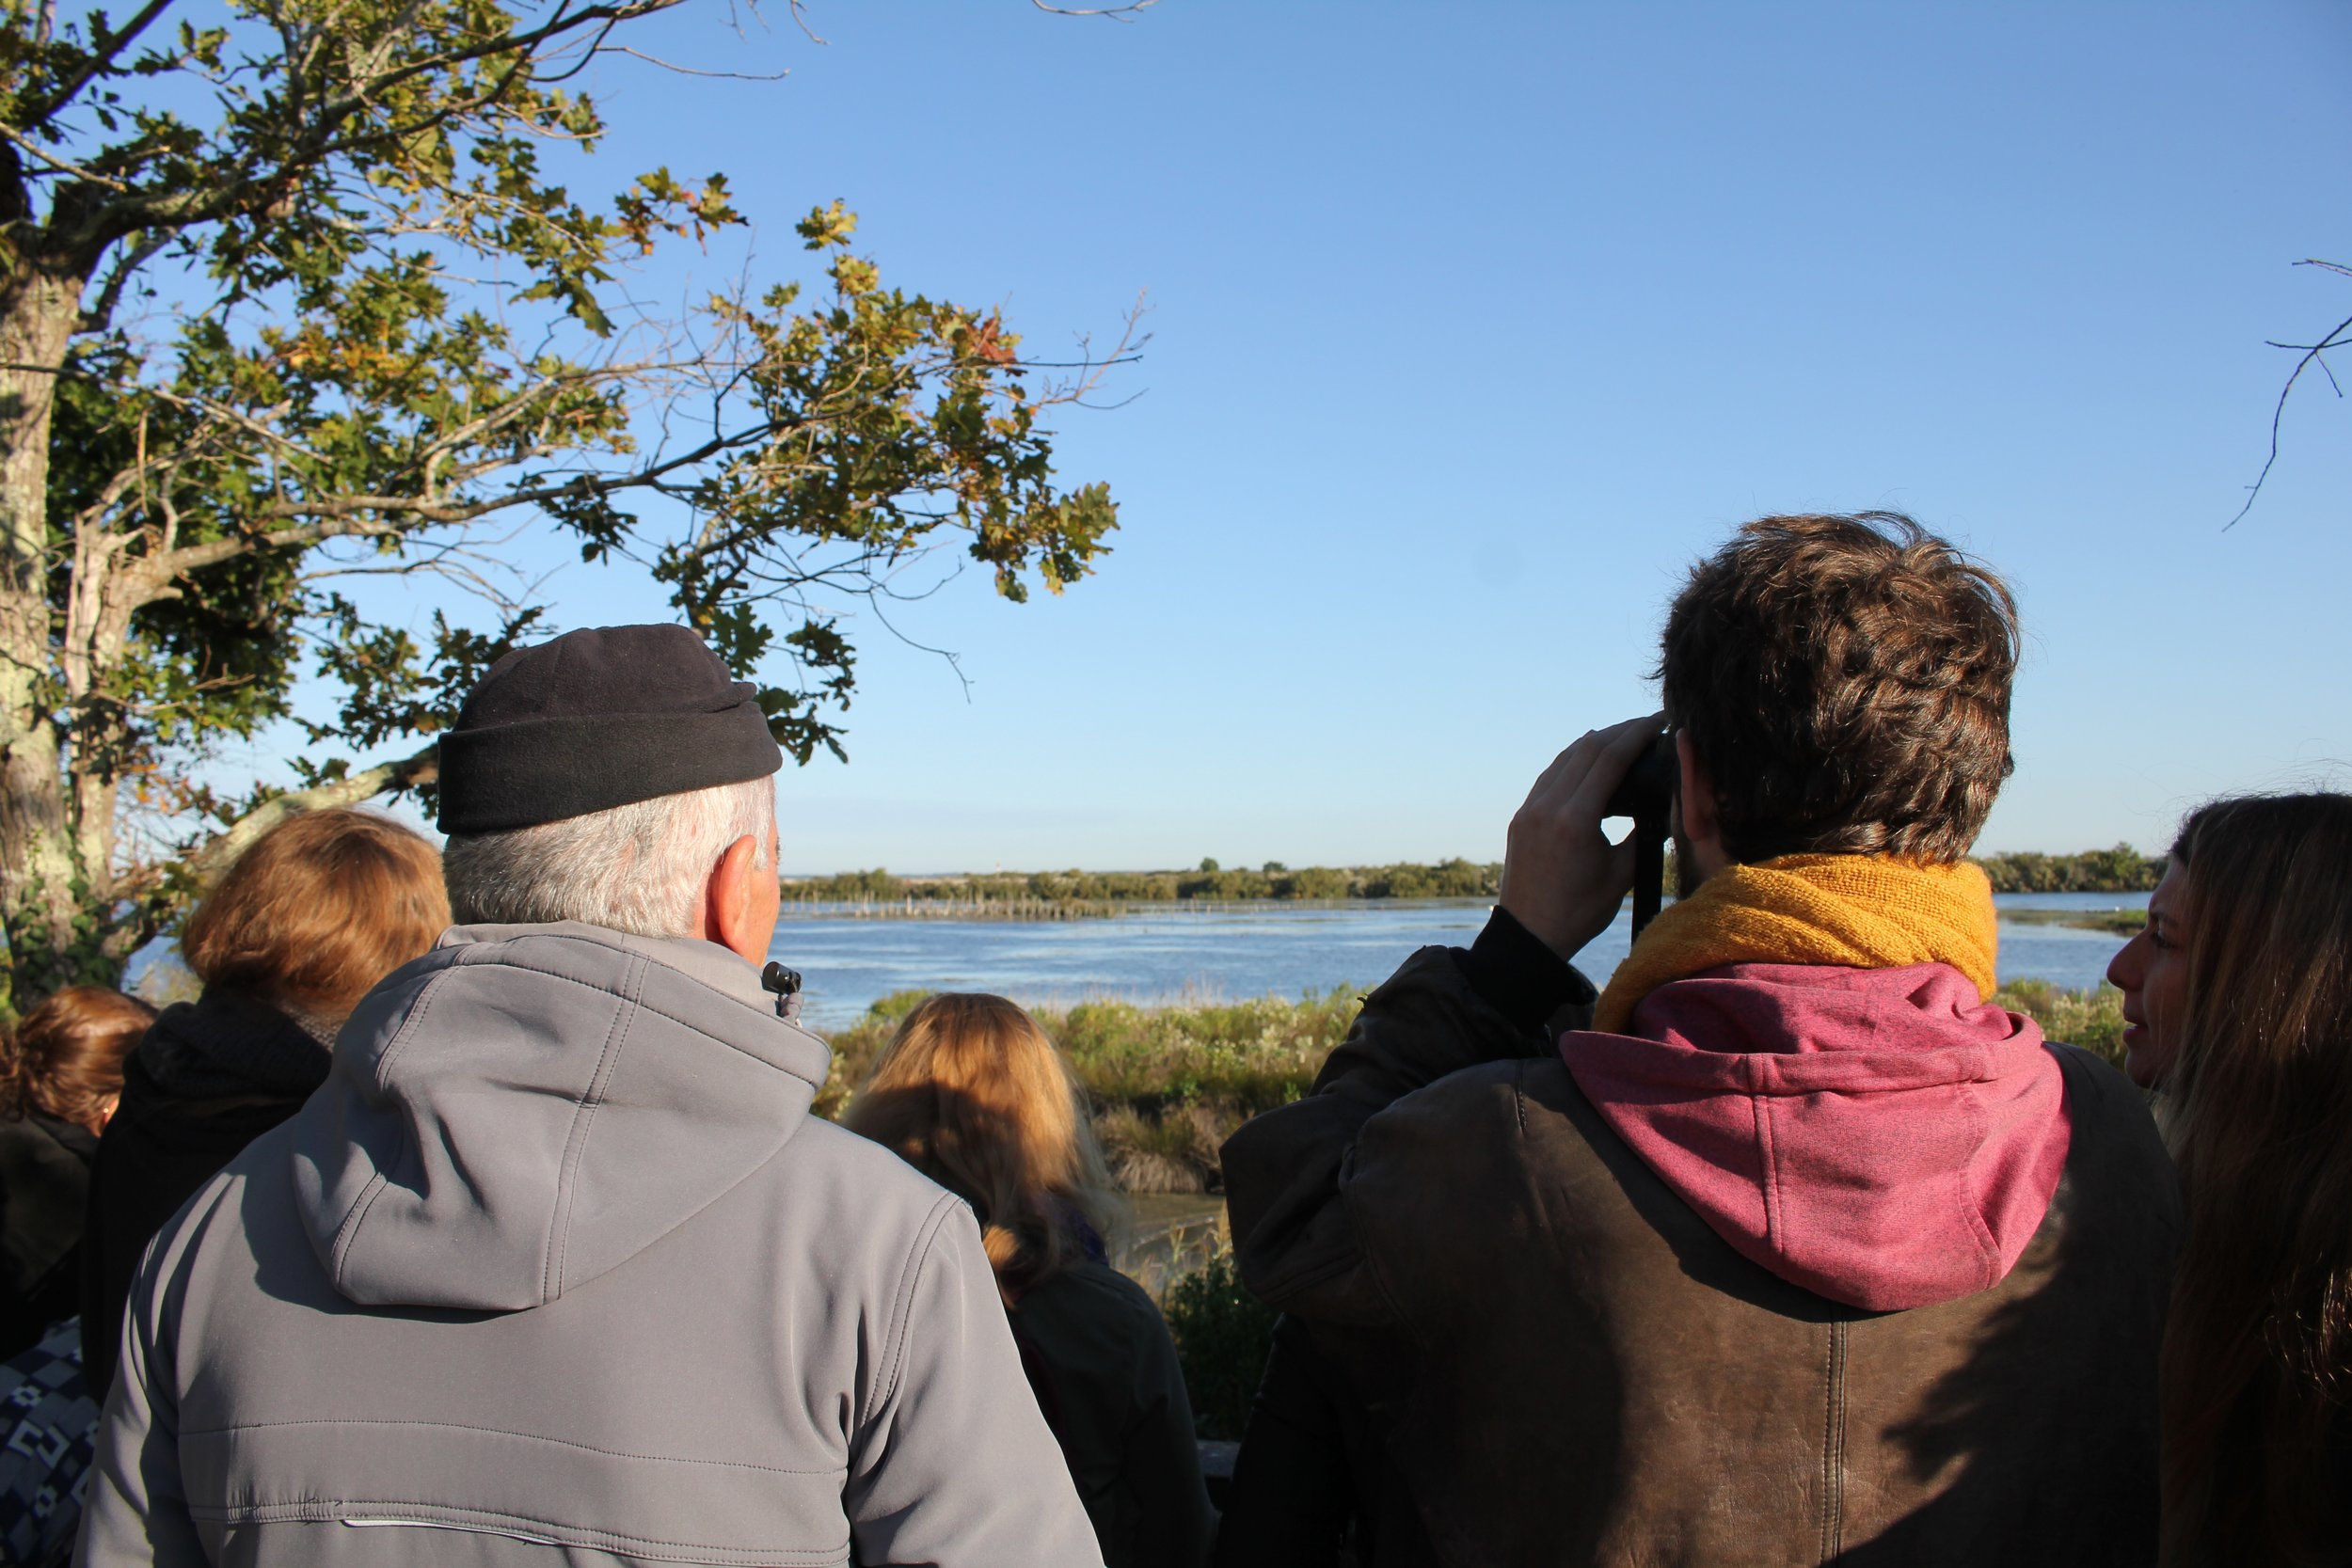 Bird watching with an ornithologist for the Teich bird reserve